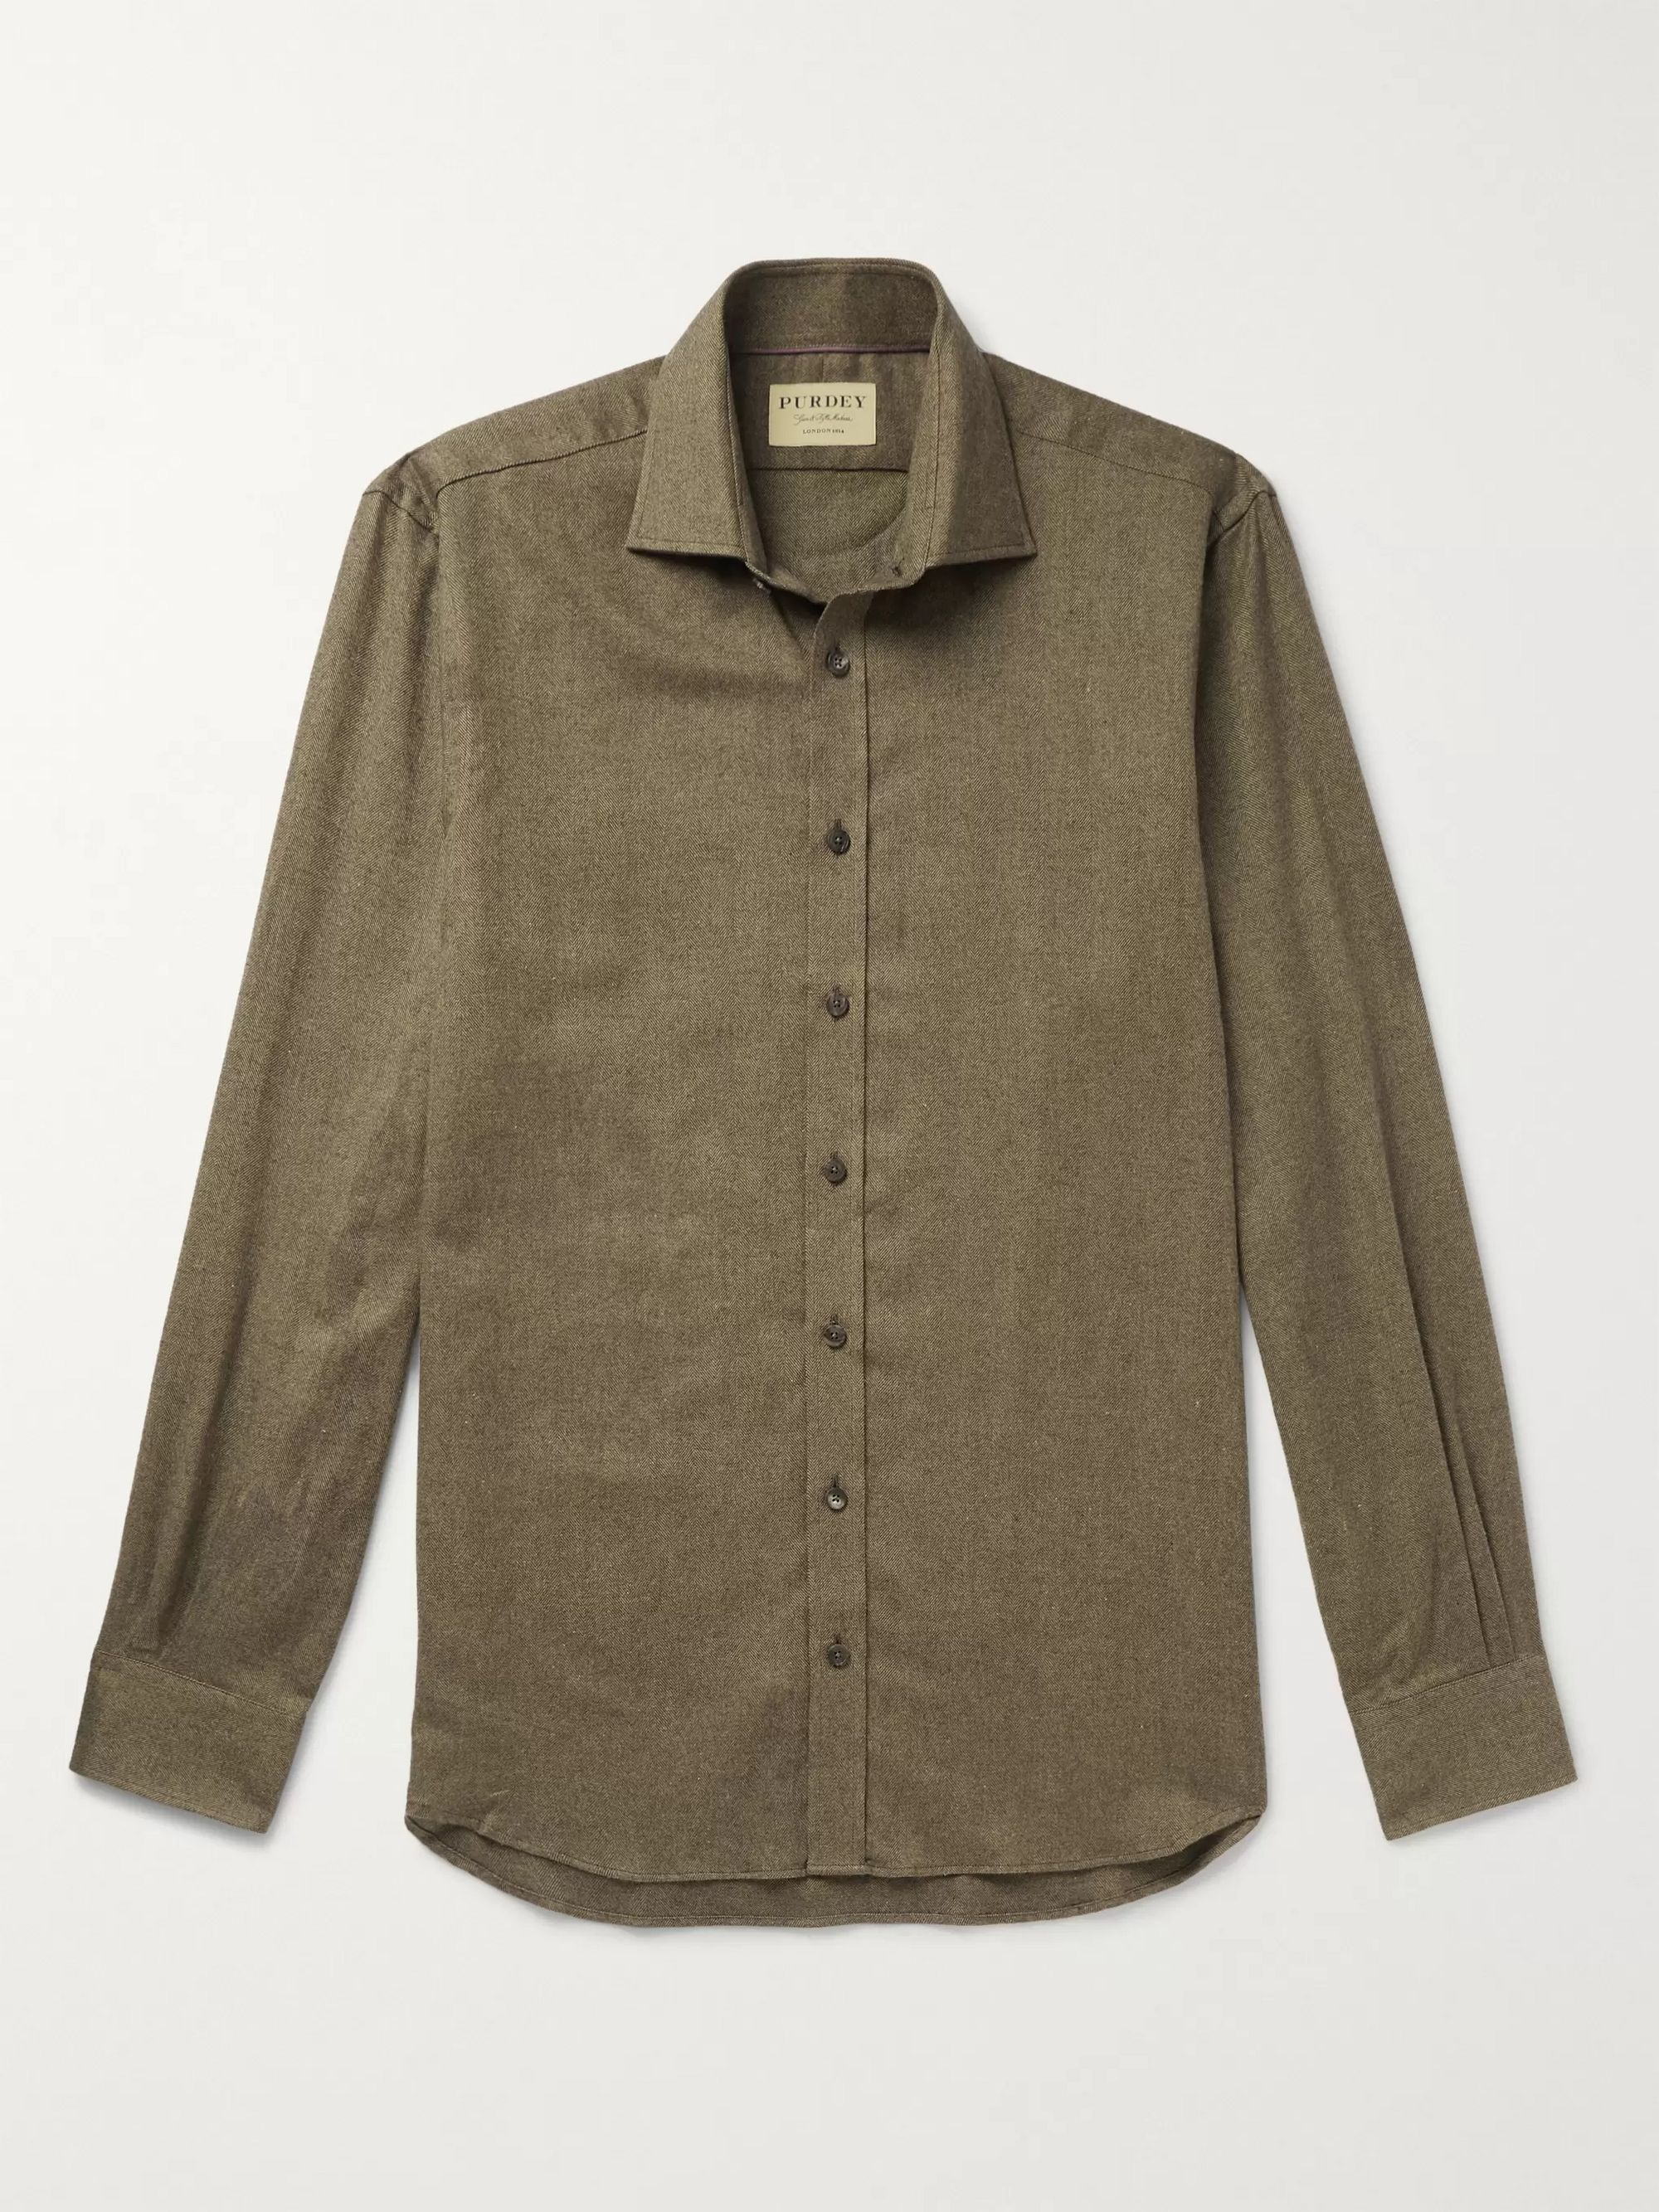 James Purdey & Sons Herringbone Brushed-Cotton Shirt